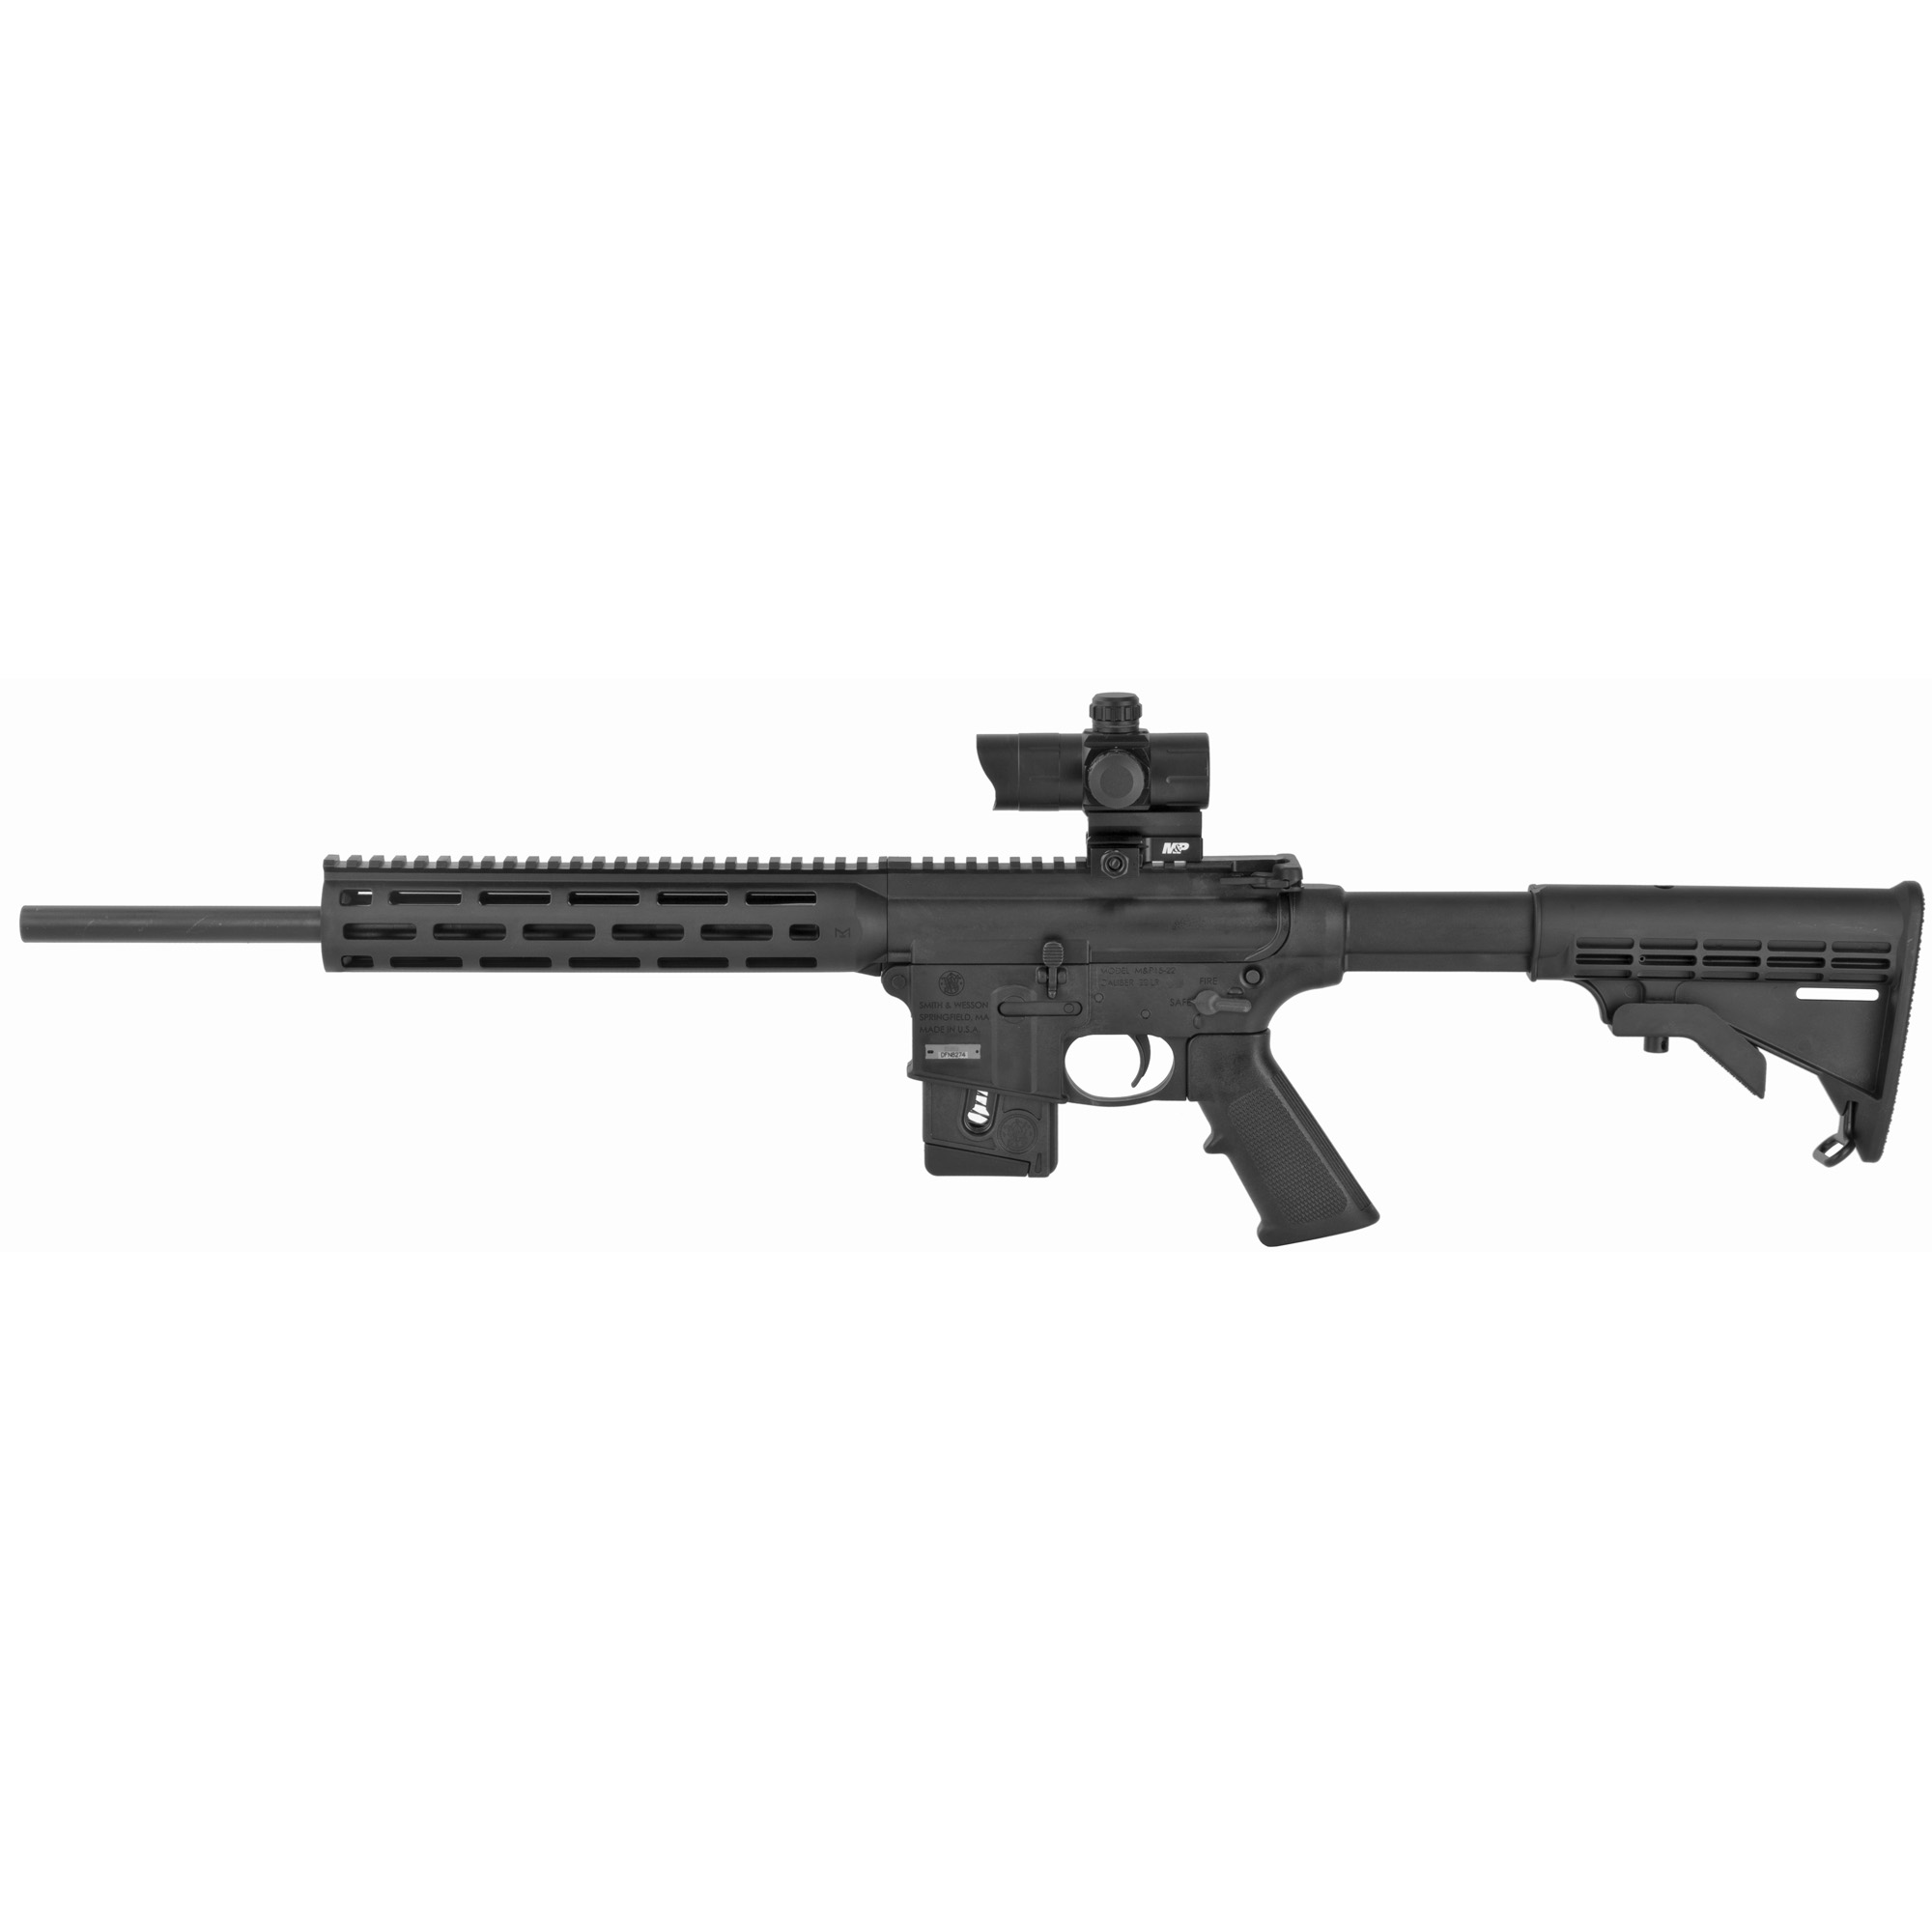 "M&p15-22 22lr 16"" 10rd Blk Or Ca"